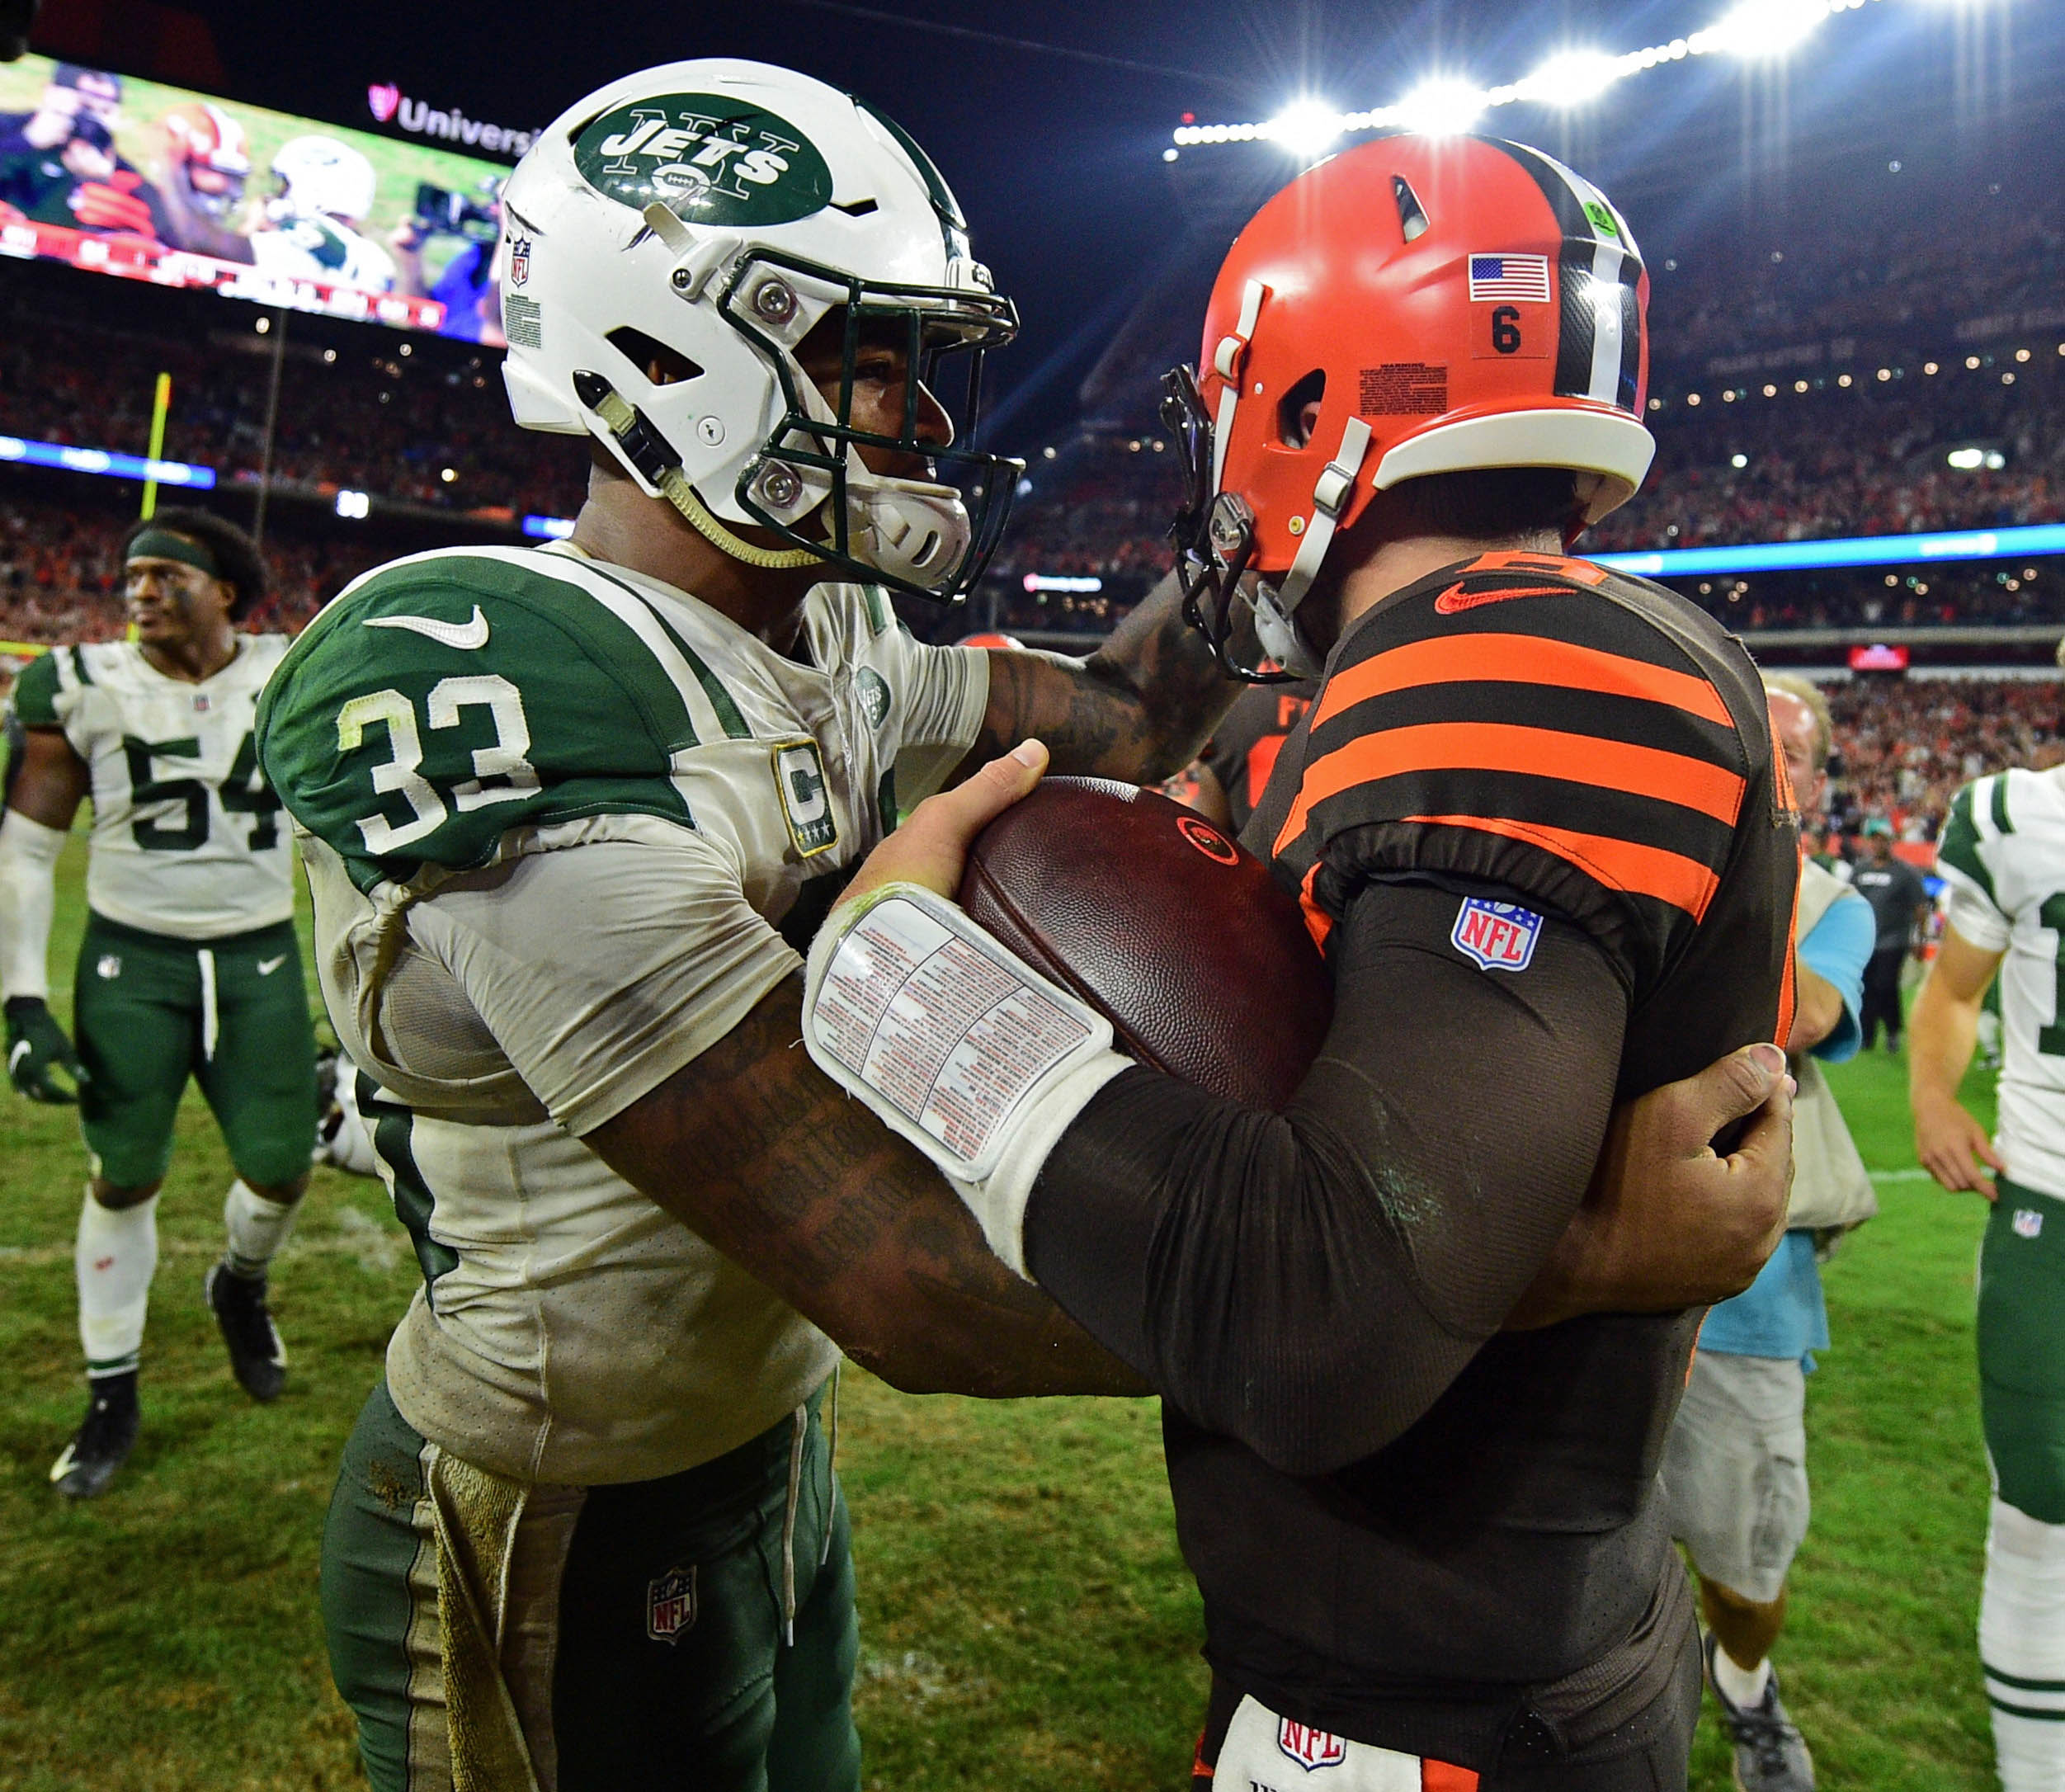 New York Jets Defense Ate Their Words Vs. Browns